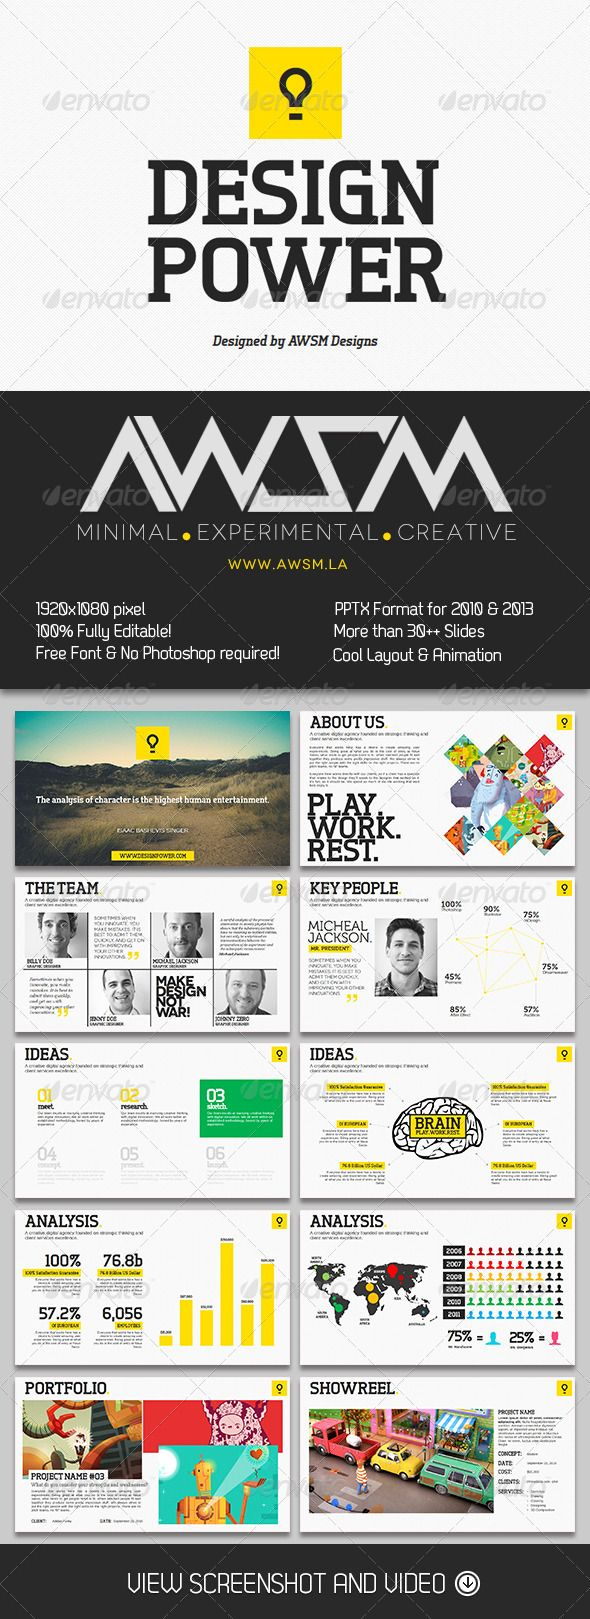 Design Power PowerPoint Template